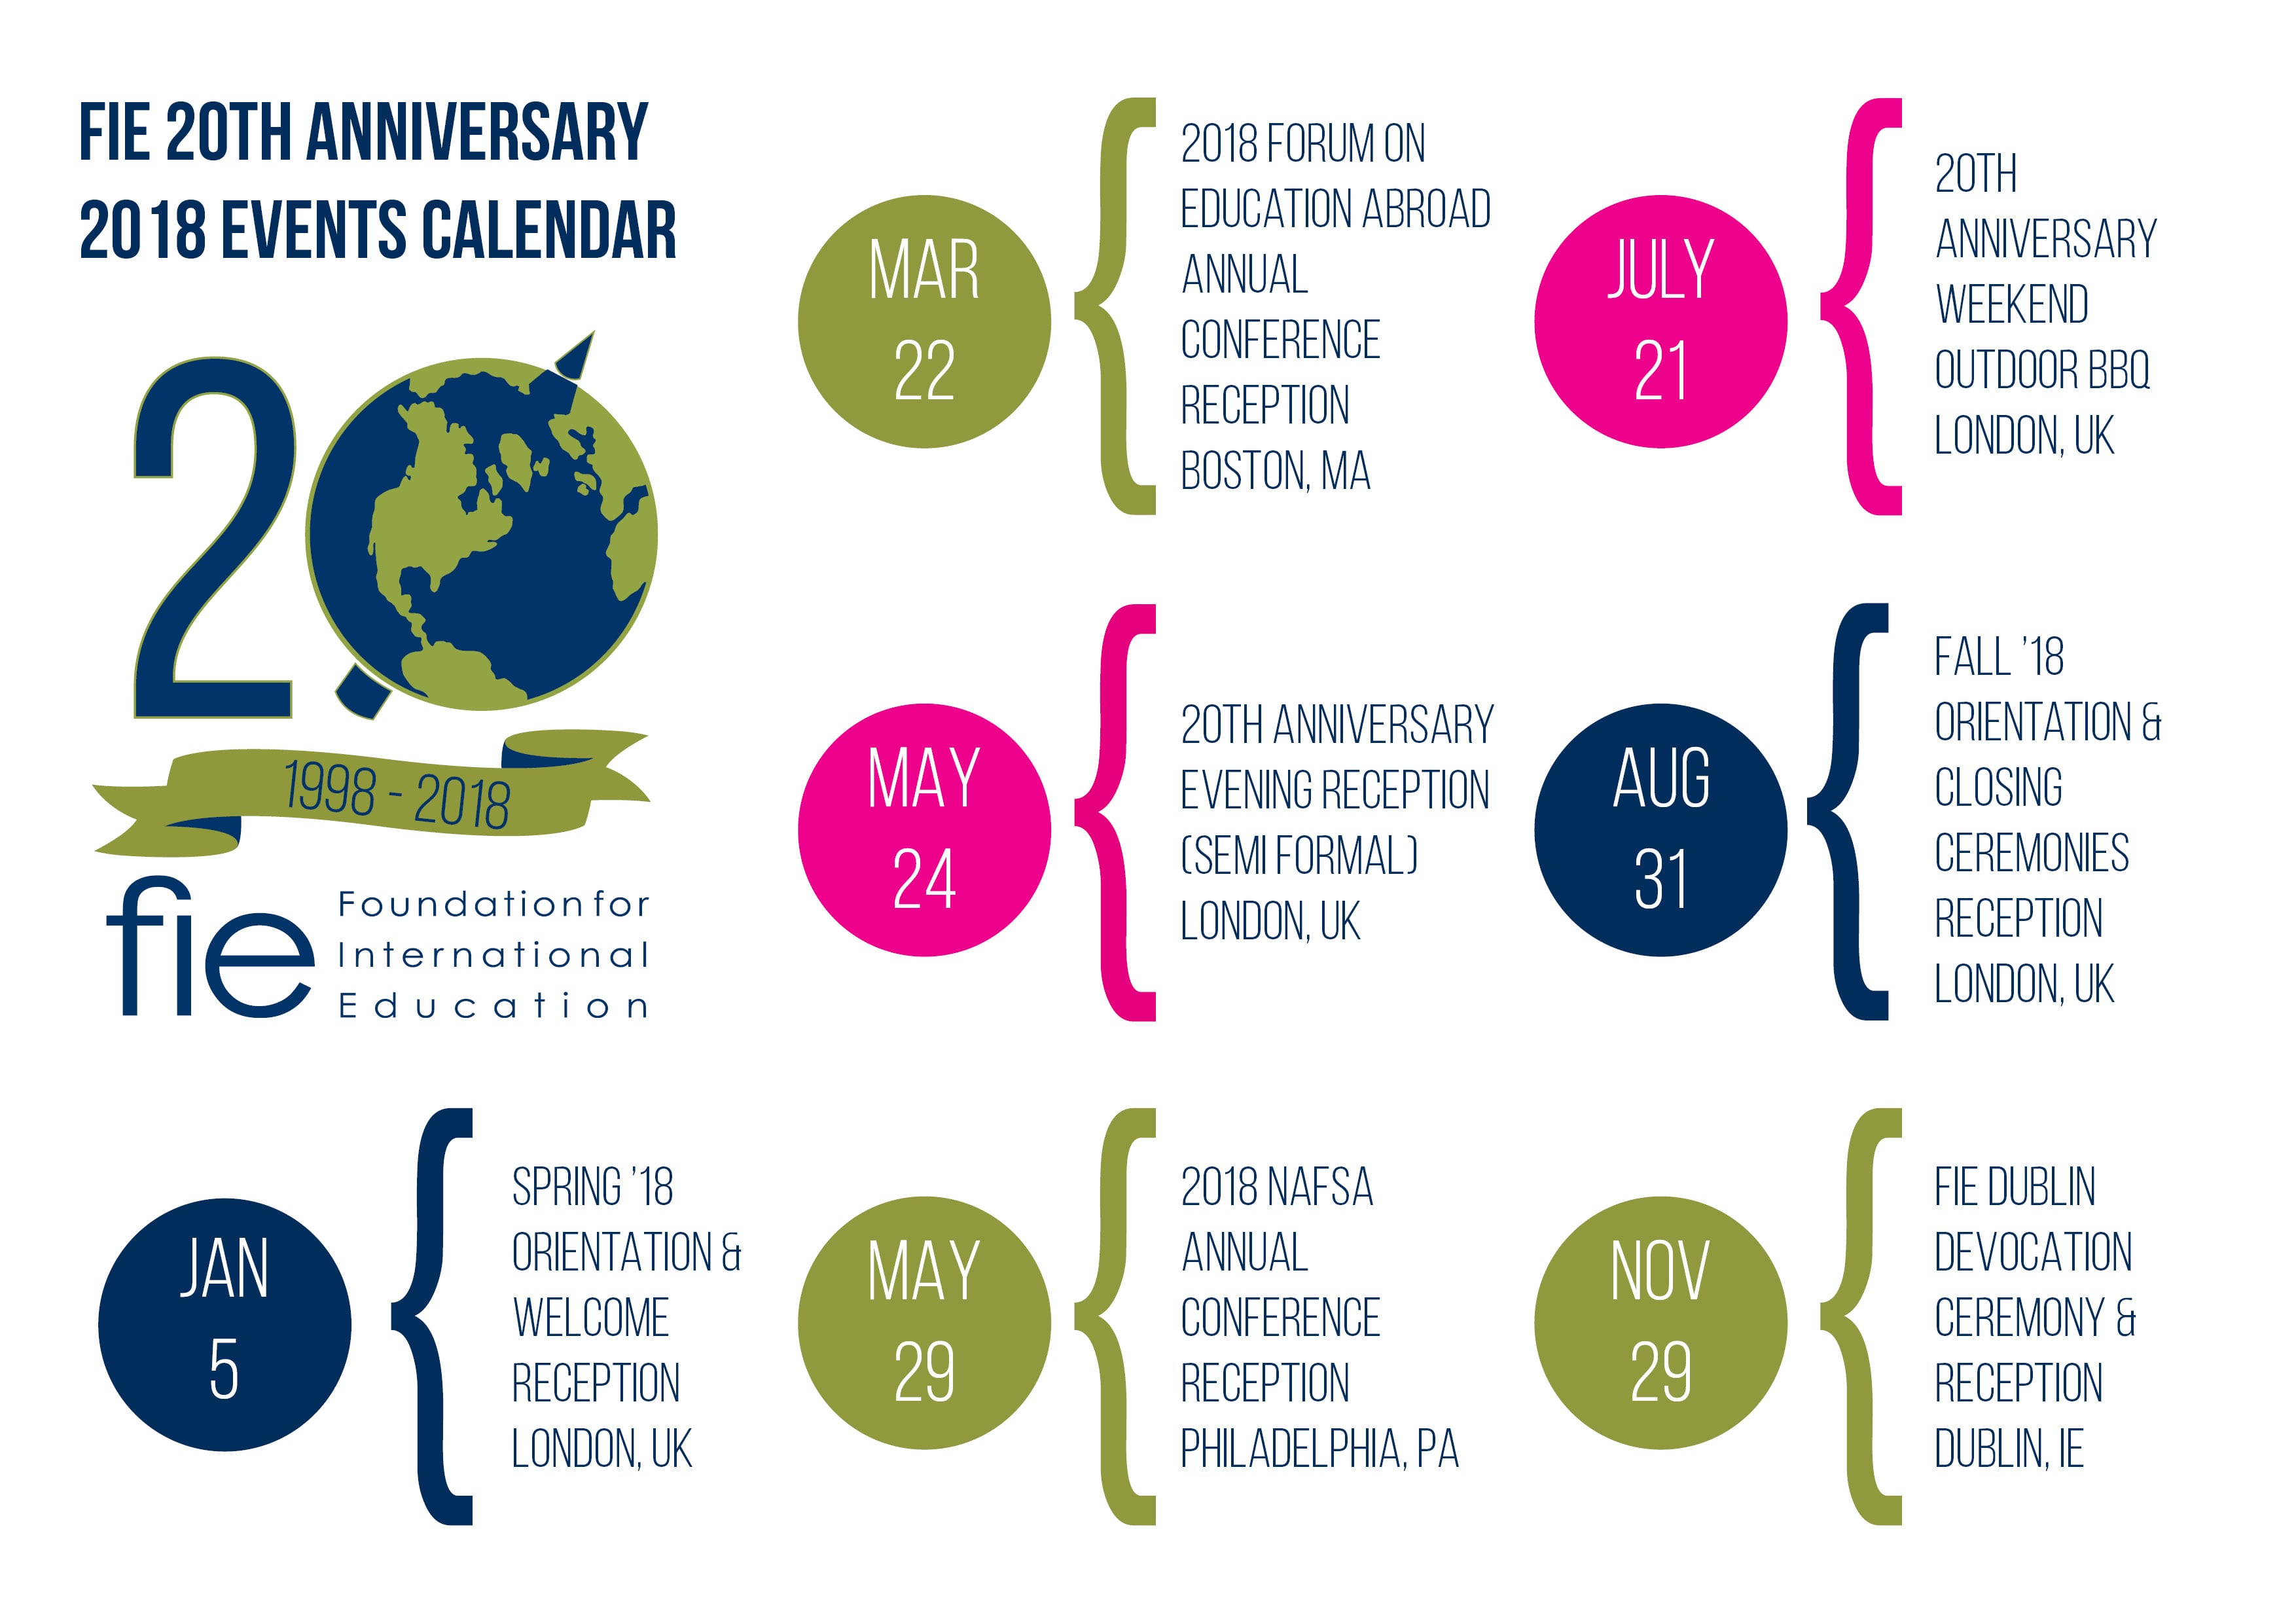 FIE 20th Anniversary Events Calendar with Dublin Details